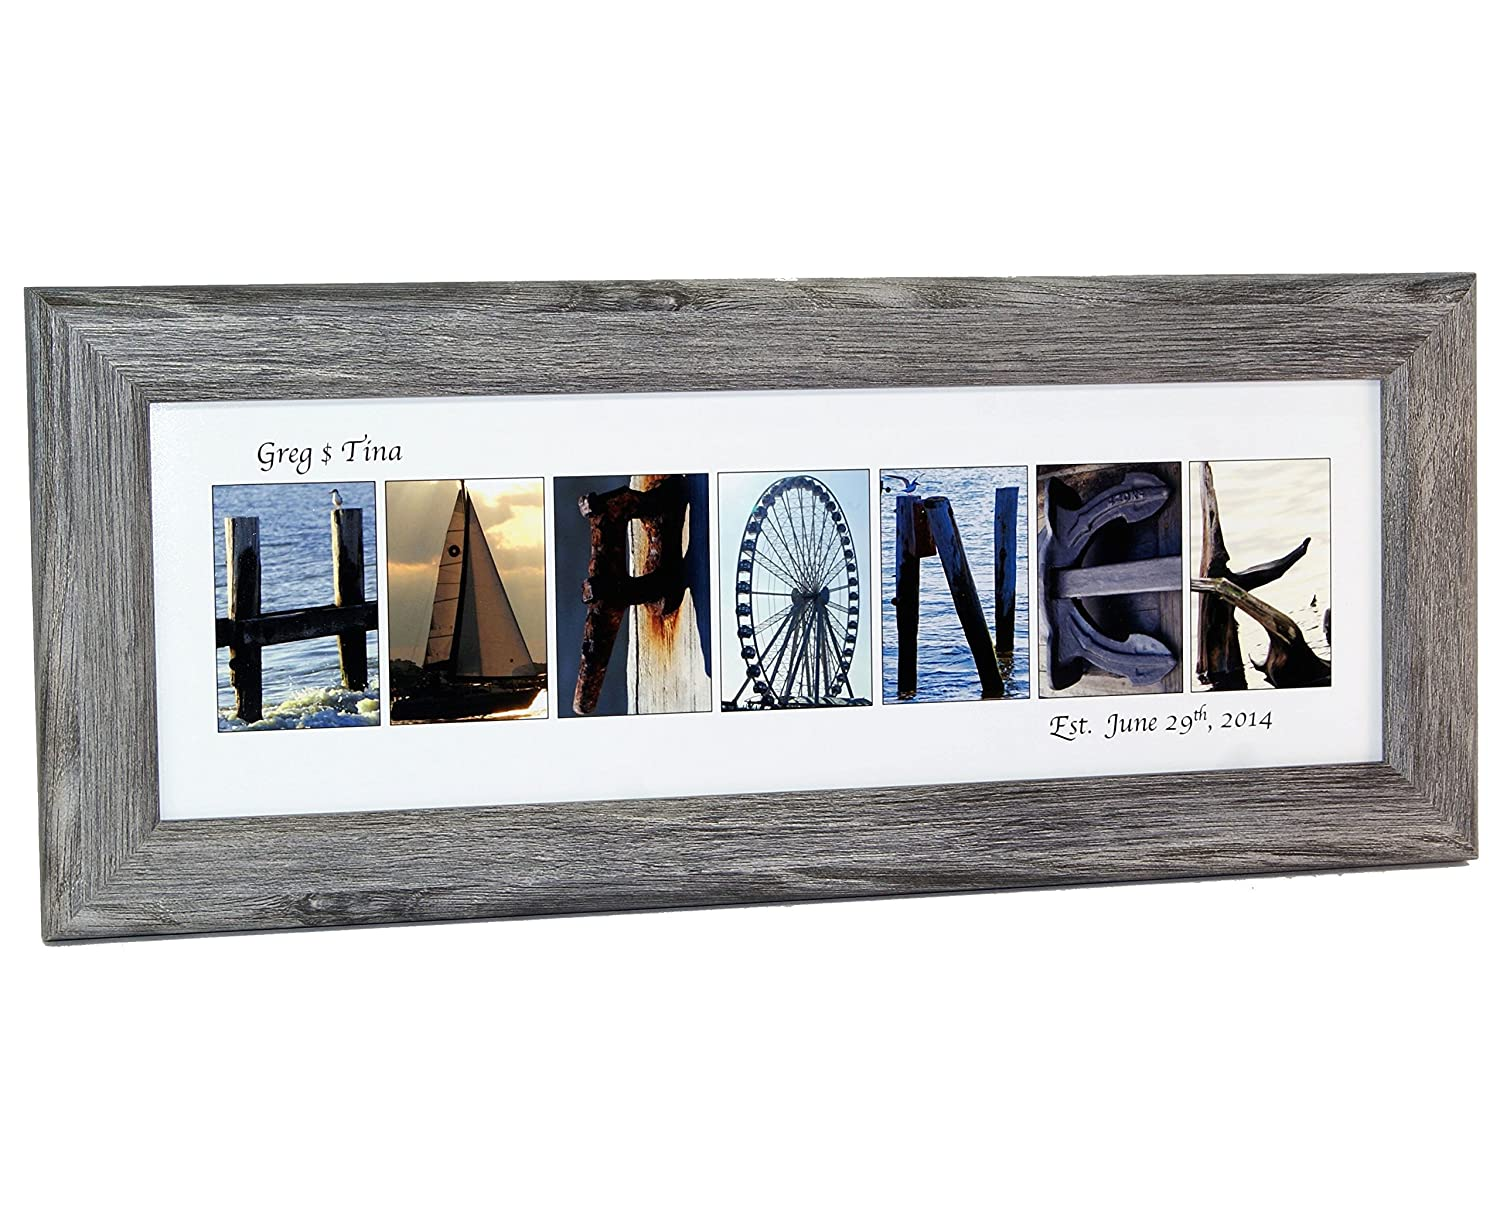 art personalized 12 by 26 inch framed name sign with beach and nautical related alphabet photographs including self standing frame posters prints - Driftwood Picture Frame